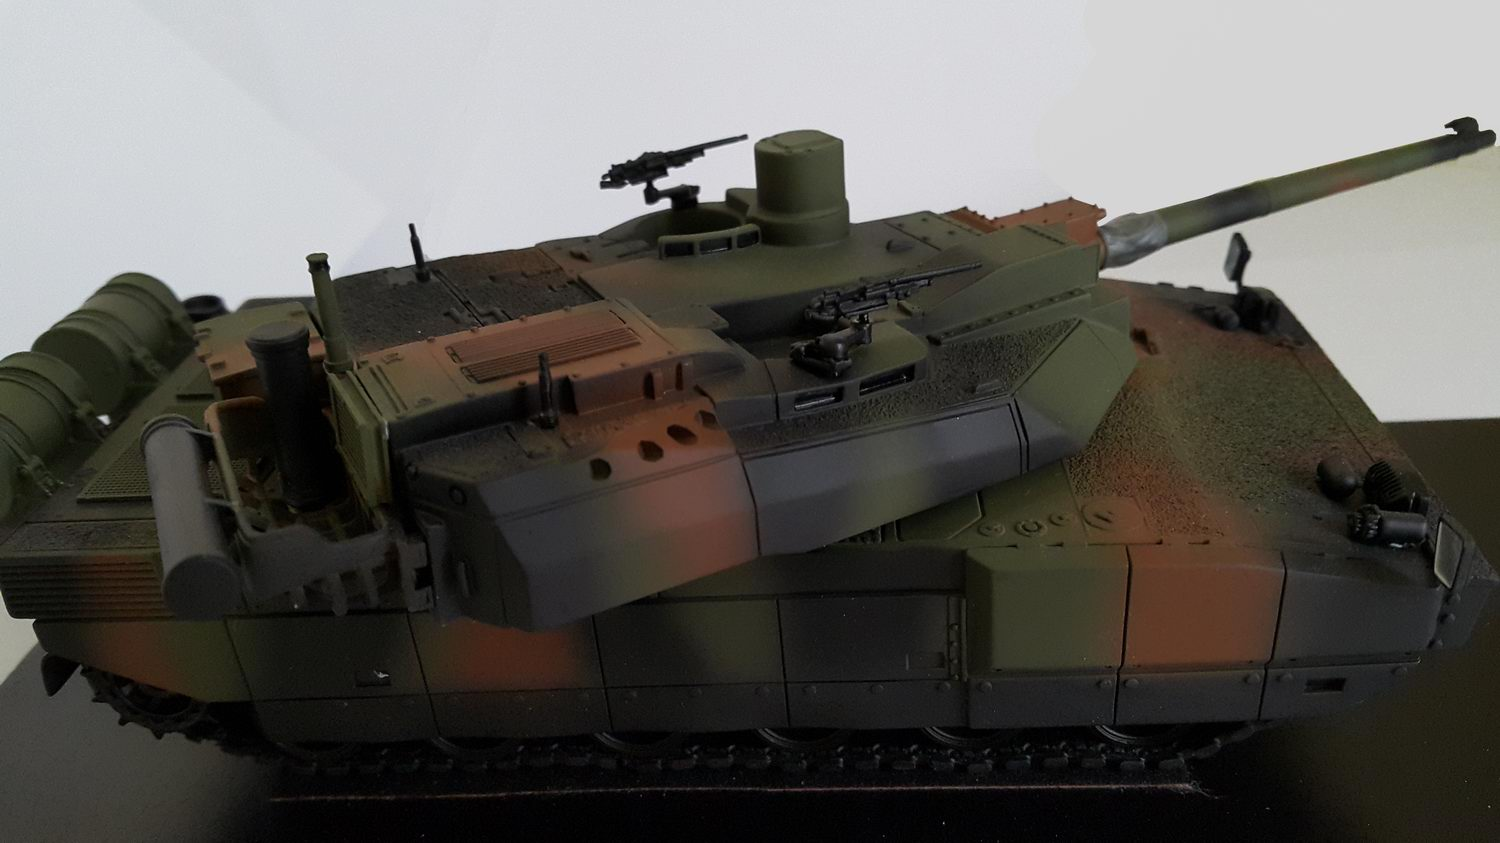 Char LECLERC GIAT Camouflage Vert OTAN 3 Tons MASTER FIGHTER BY GASO.LINE